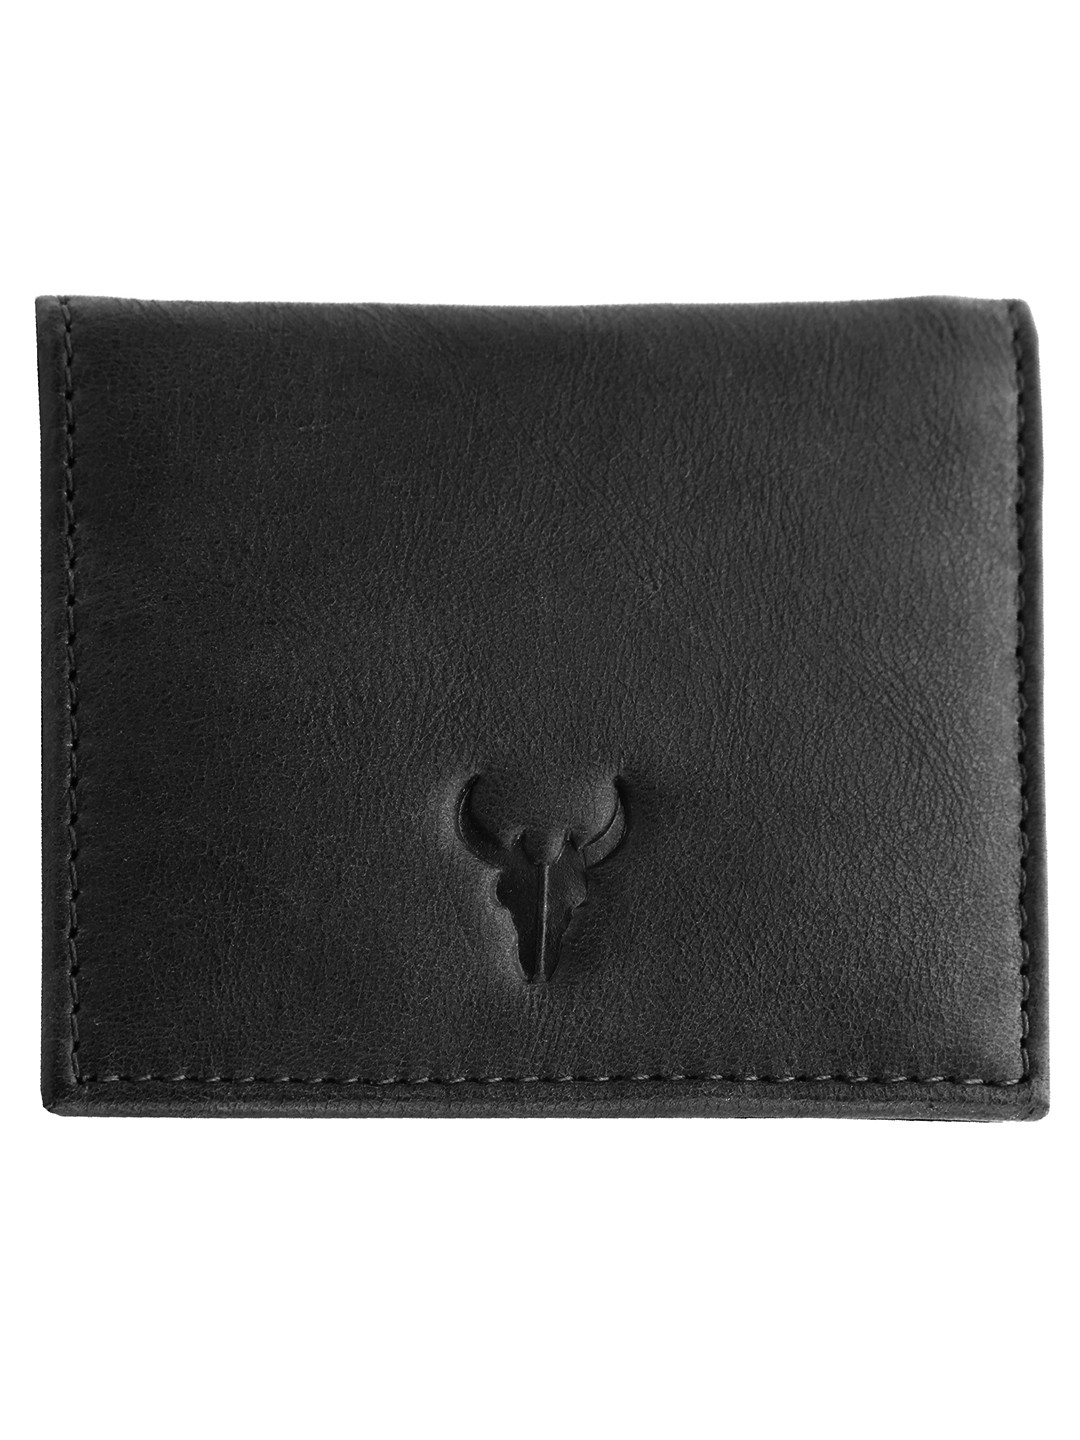 Napa Hide   Napa Hide RFID Protected Genuine High Quality Leather Black Wallet for Men